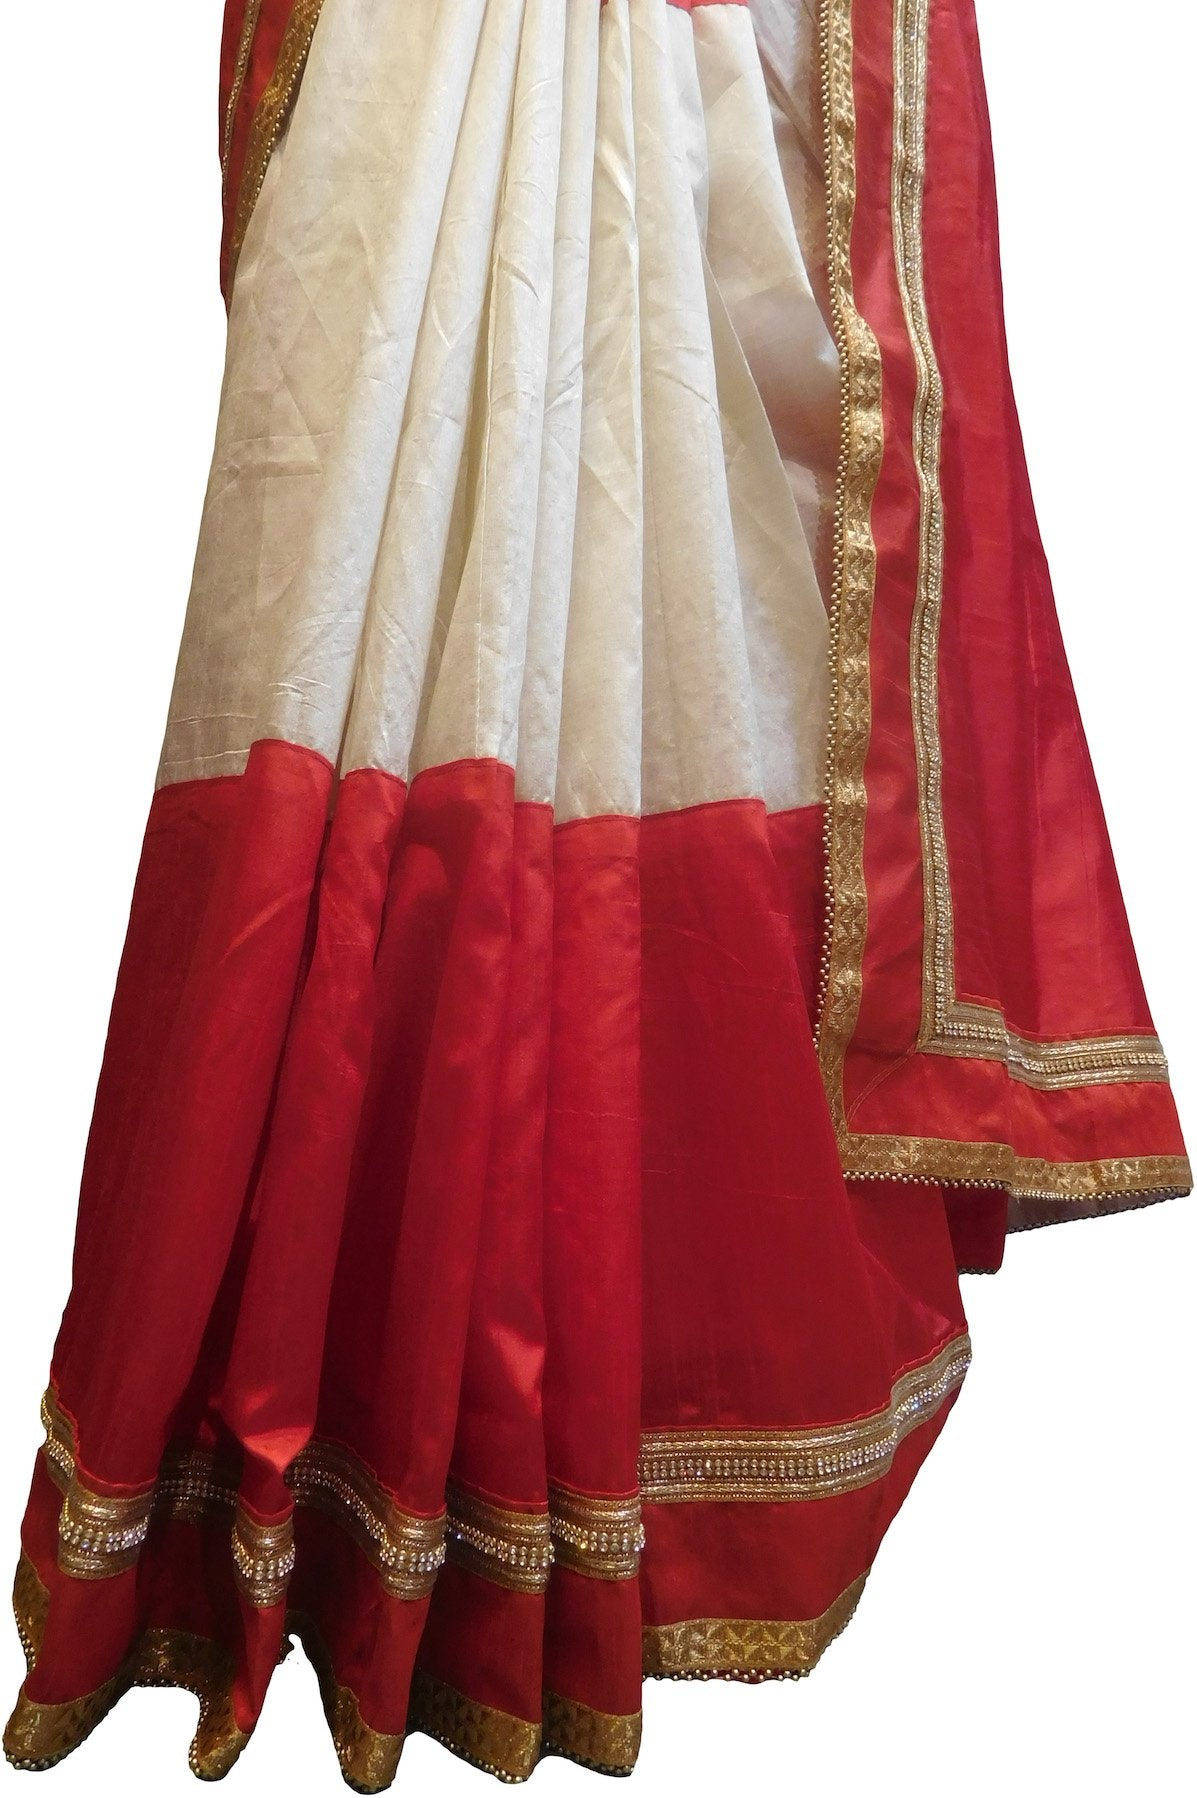 SMSAREE Red & White Designer Wedding Partywear Silk Zari & Stone Hand Embroidery Work Bridal Saree Sari With Blouse Piece F524